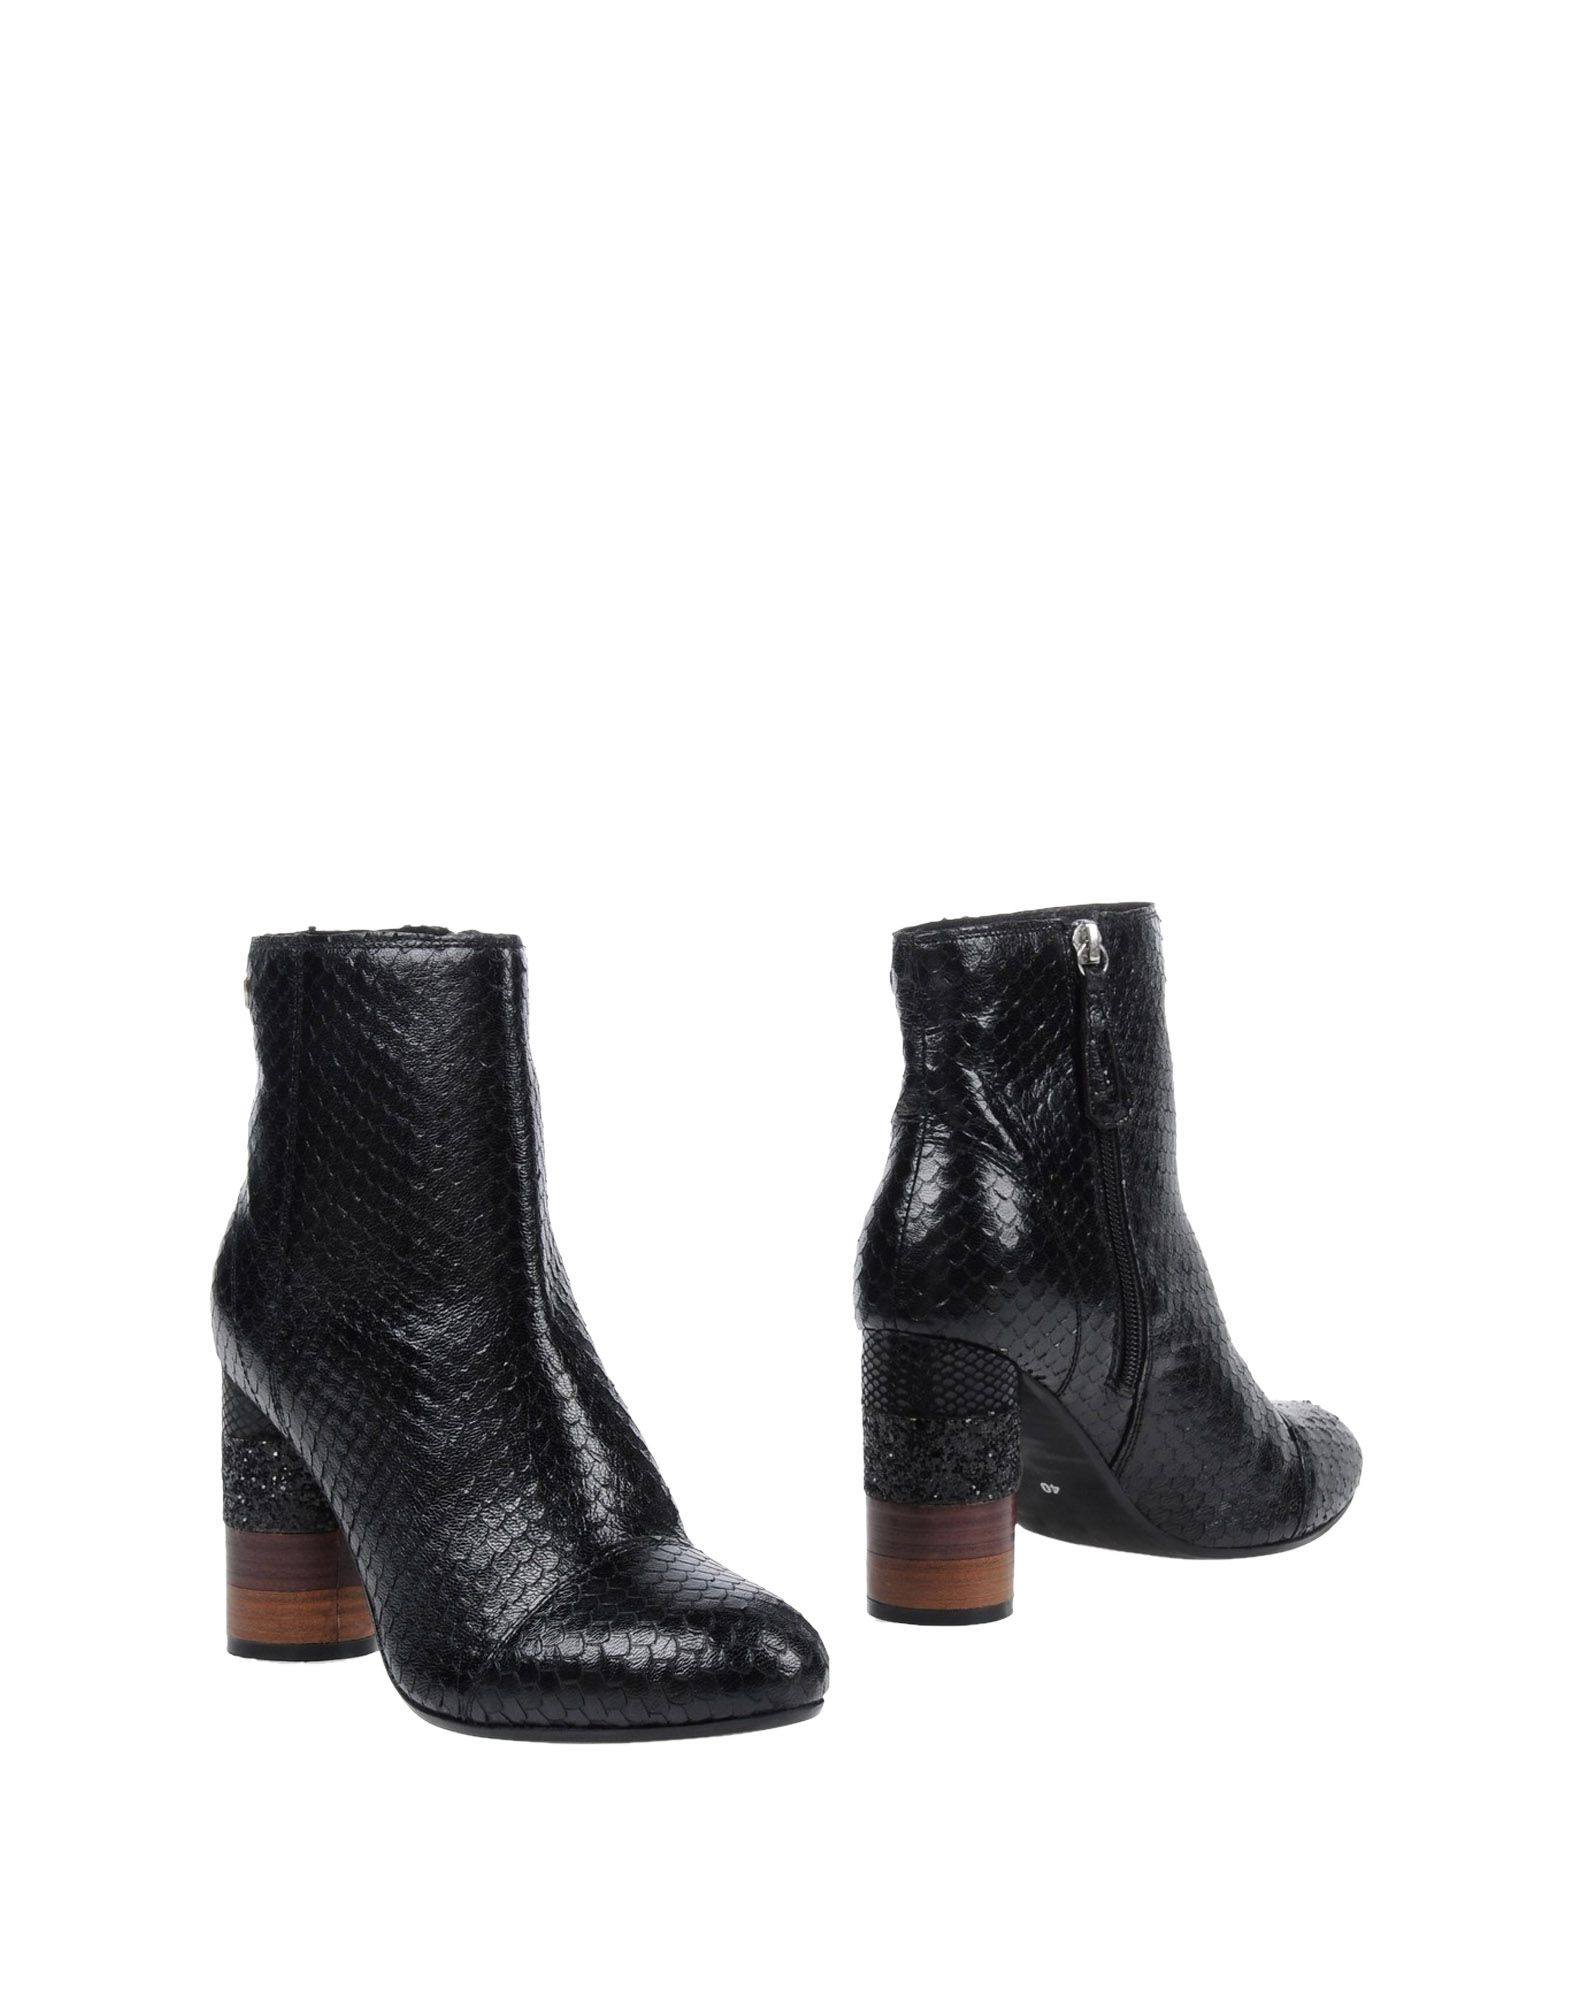 Gioseppo Gioseppo Ankle Boot - Women Gioseppo Gioseppo Ankle Boots online on  Australia - 11461695NB 0b15cf